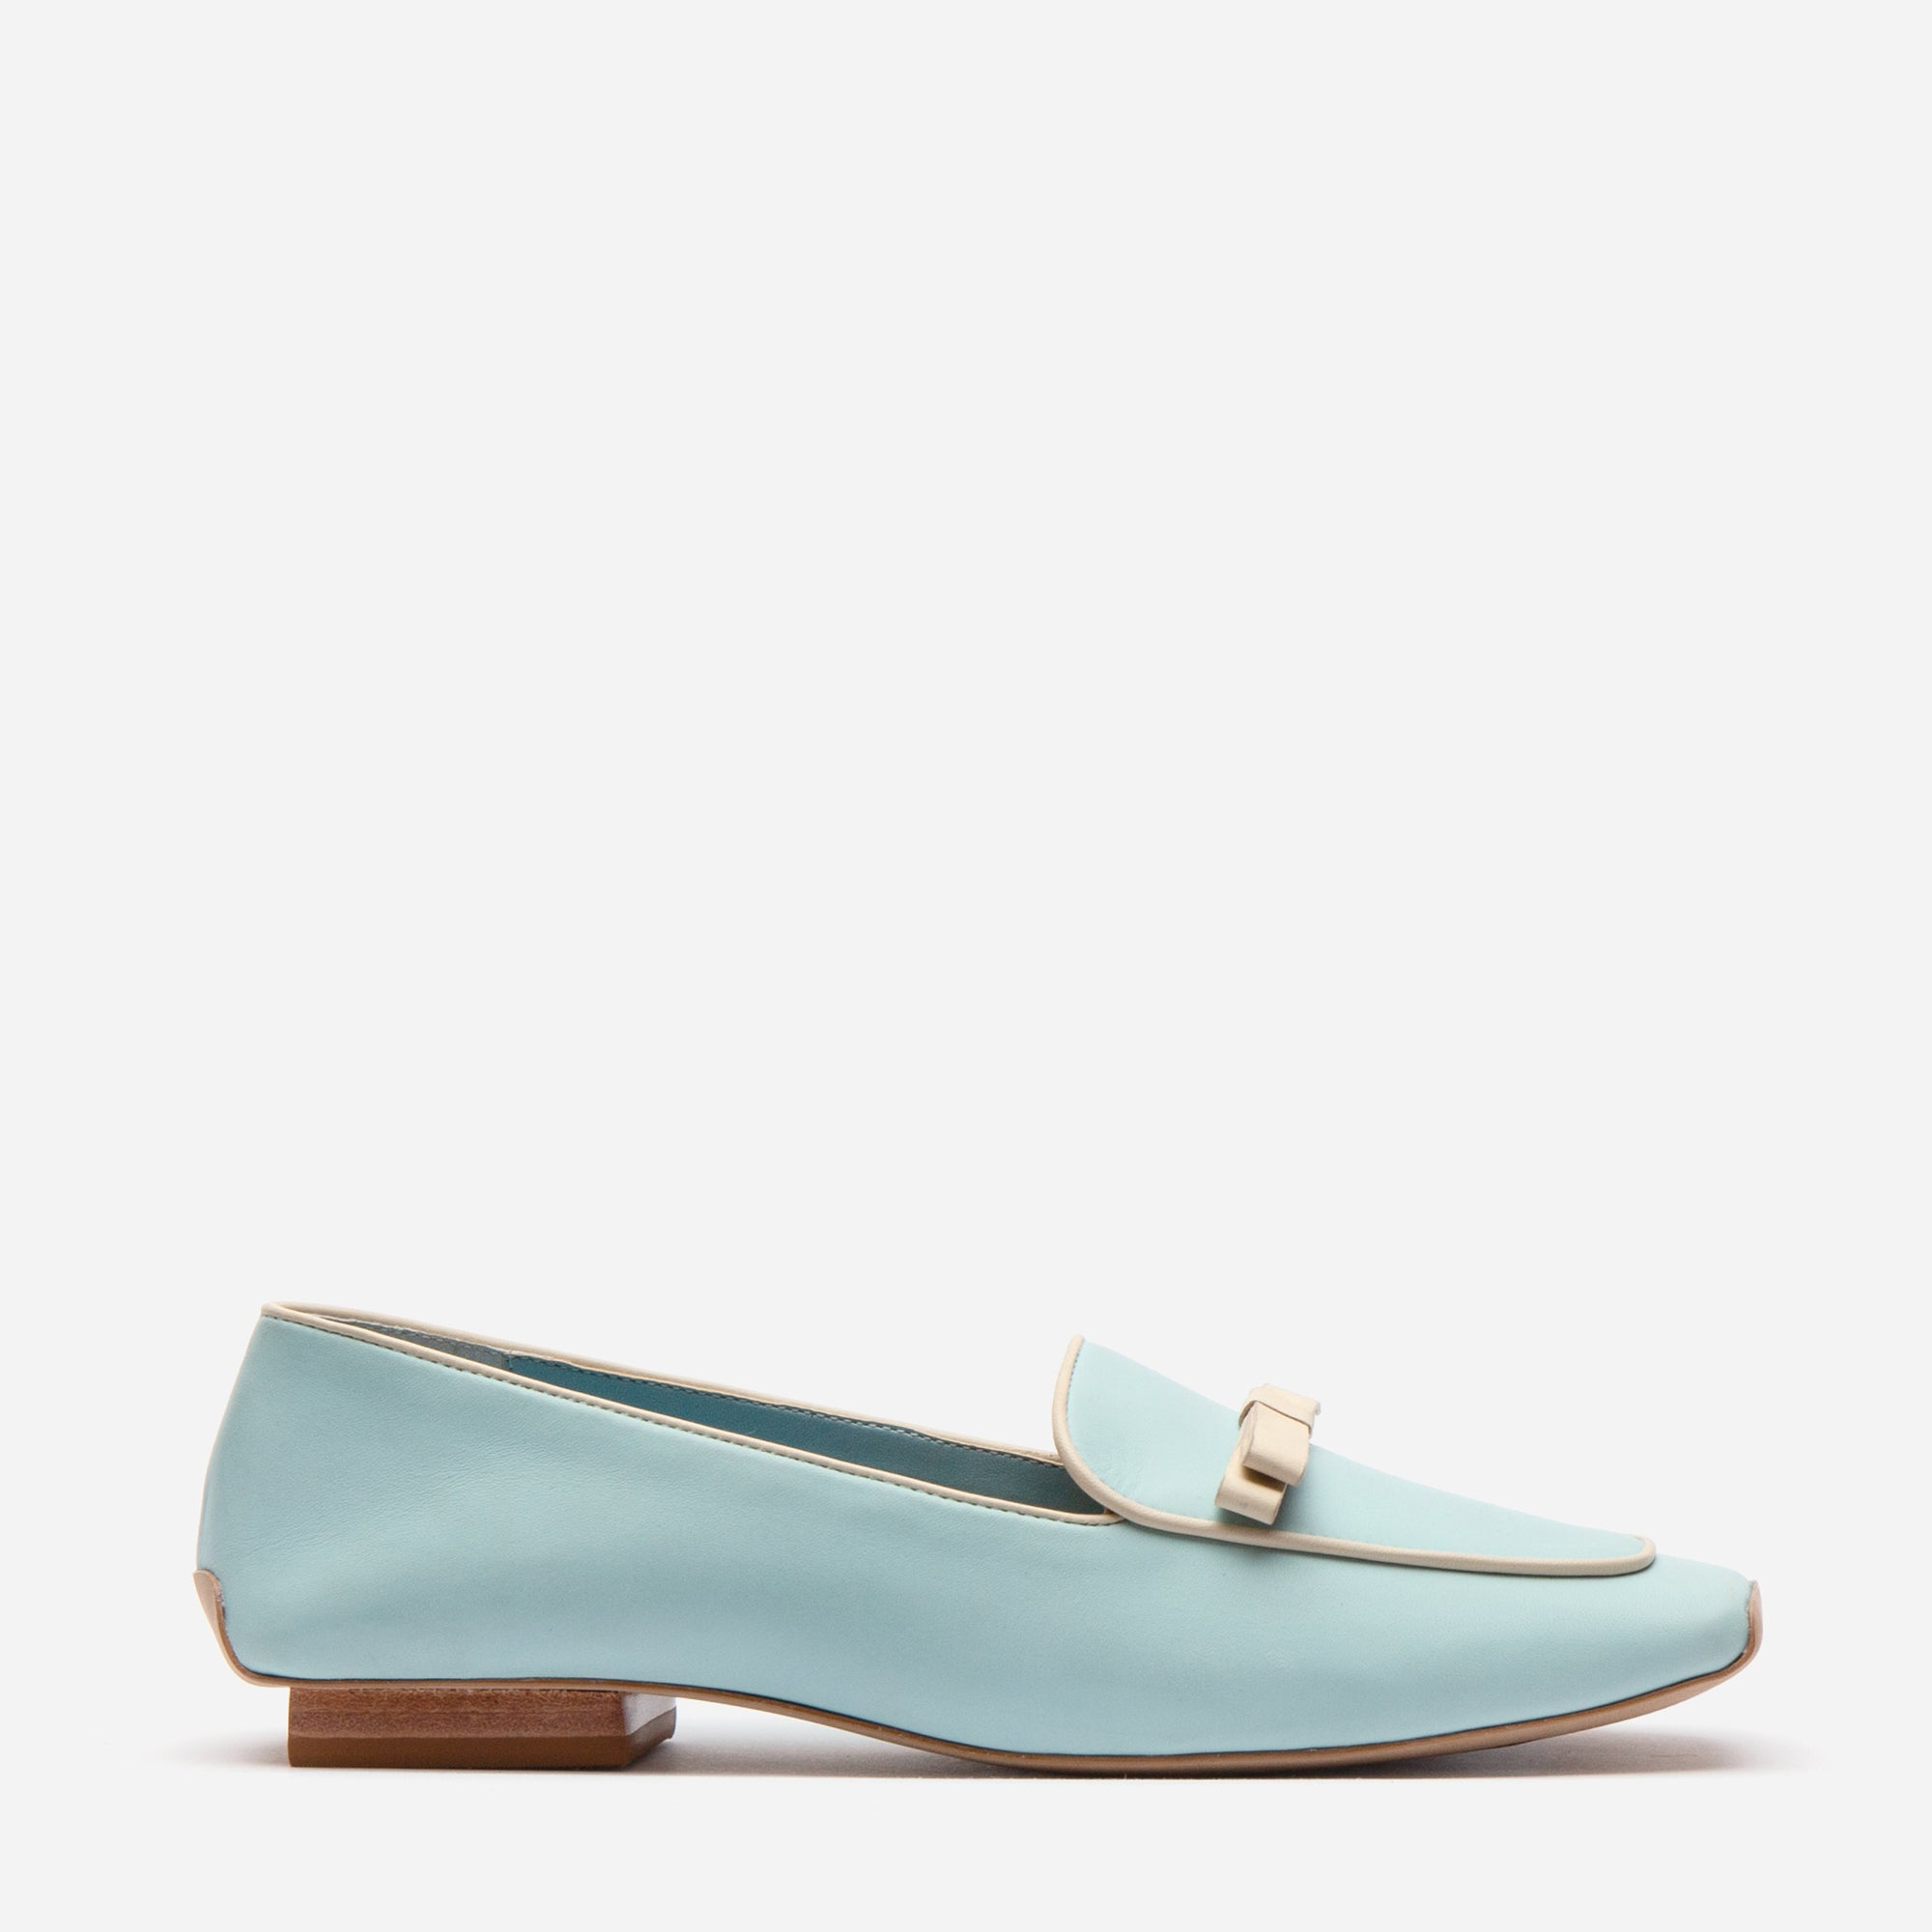 Suzanne Loafer Leather Light Blue Oyster - Frances Valentine